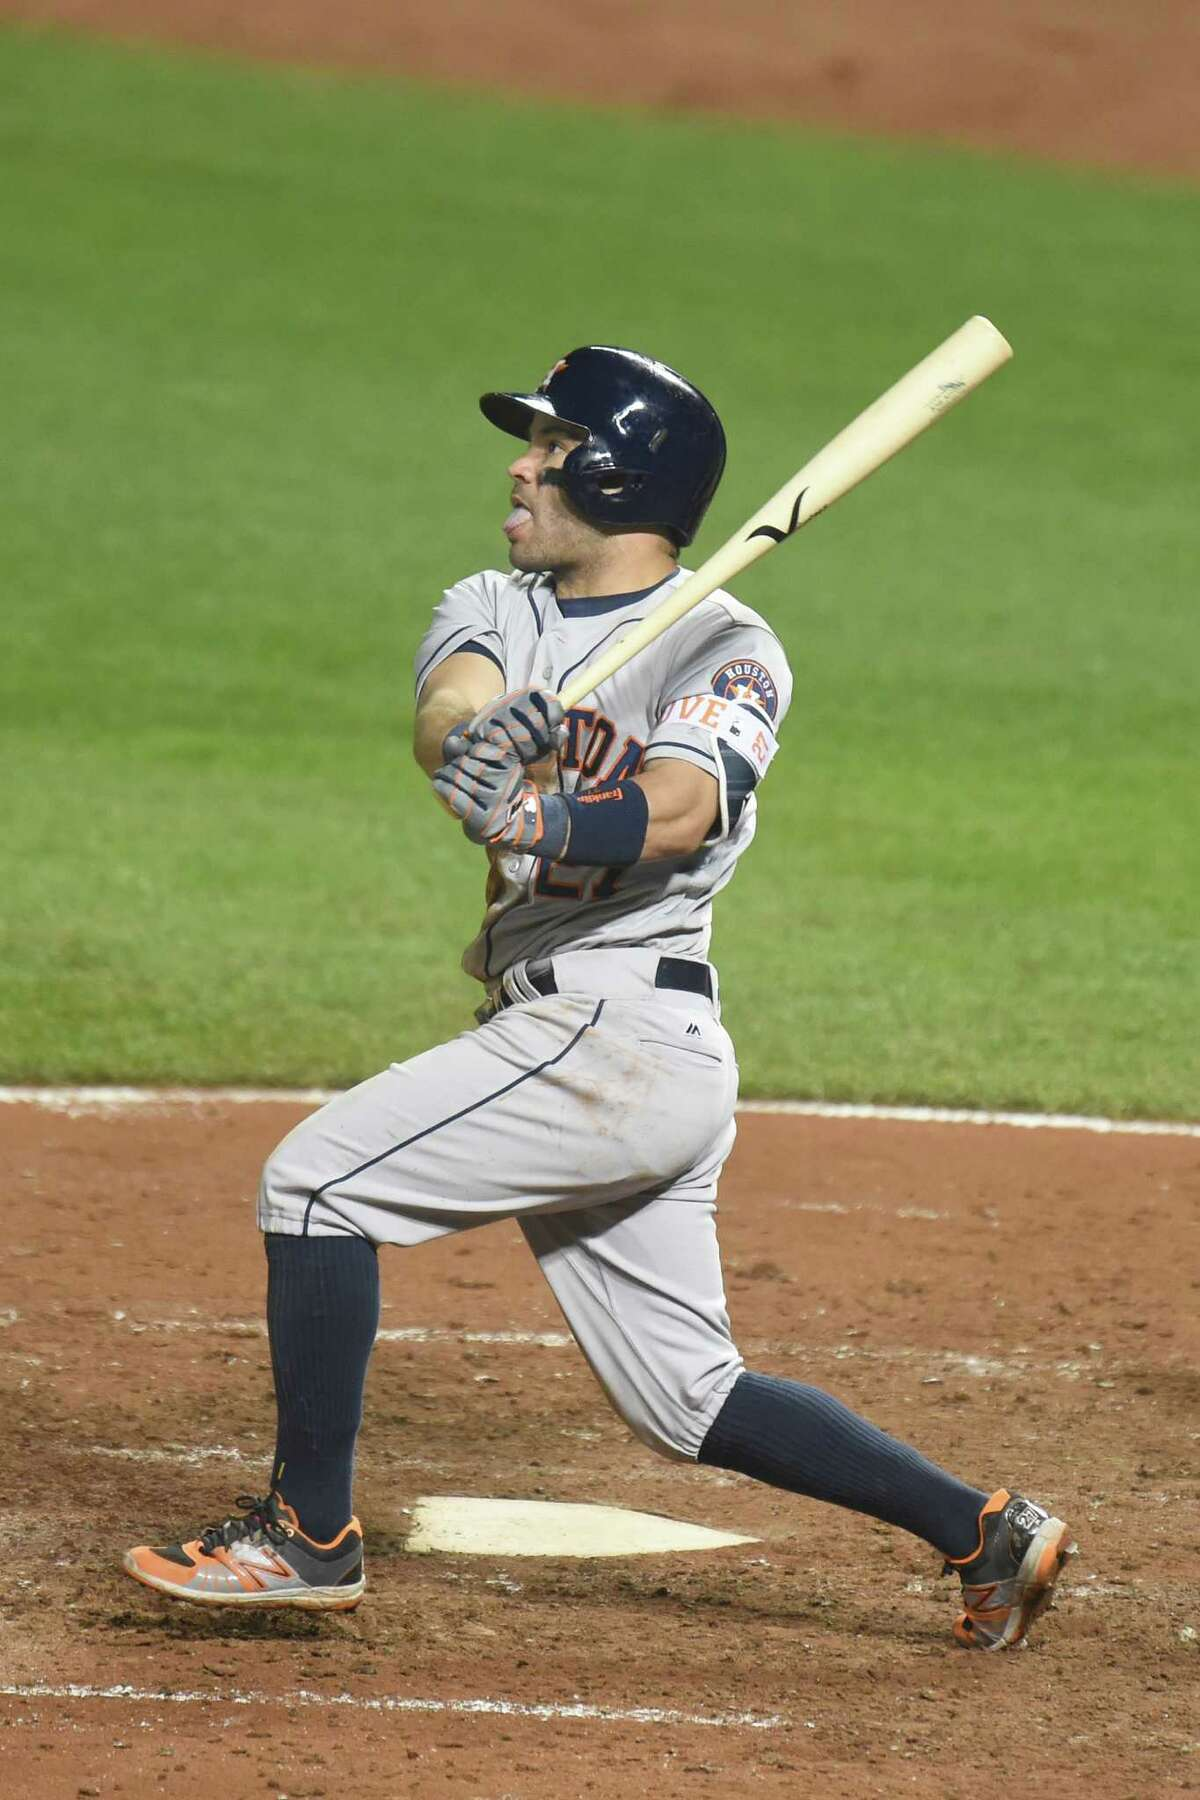 BALTIMORE, MD - AUGUST 19: Jose Altuve #27 of the Houston Astros hits a two run home run in the fifth inning during a baseball game against the the Baltimore Orioles at Oriole Park at Camden Yards on August 19, 2016 in Baltimore, Maryland.